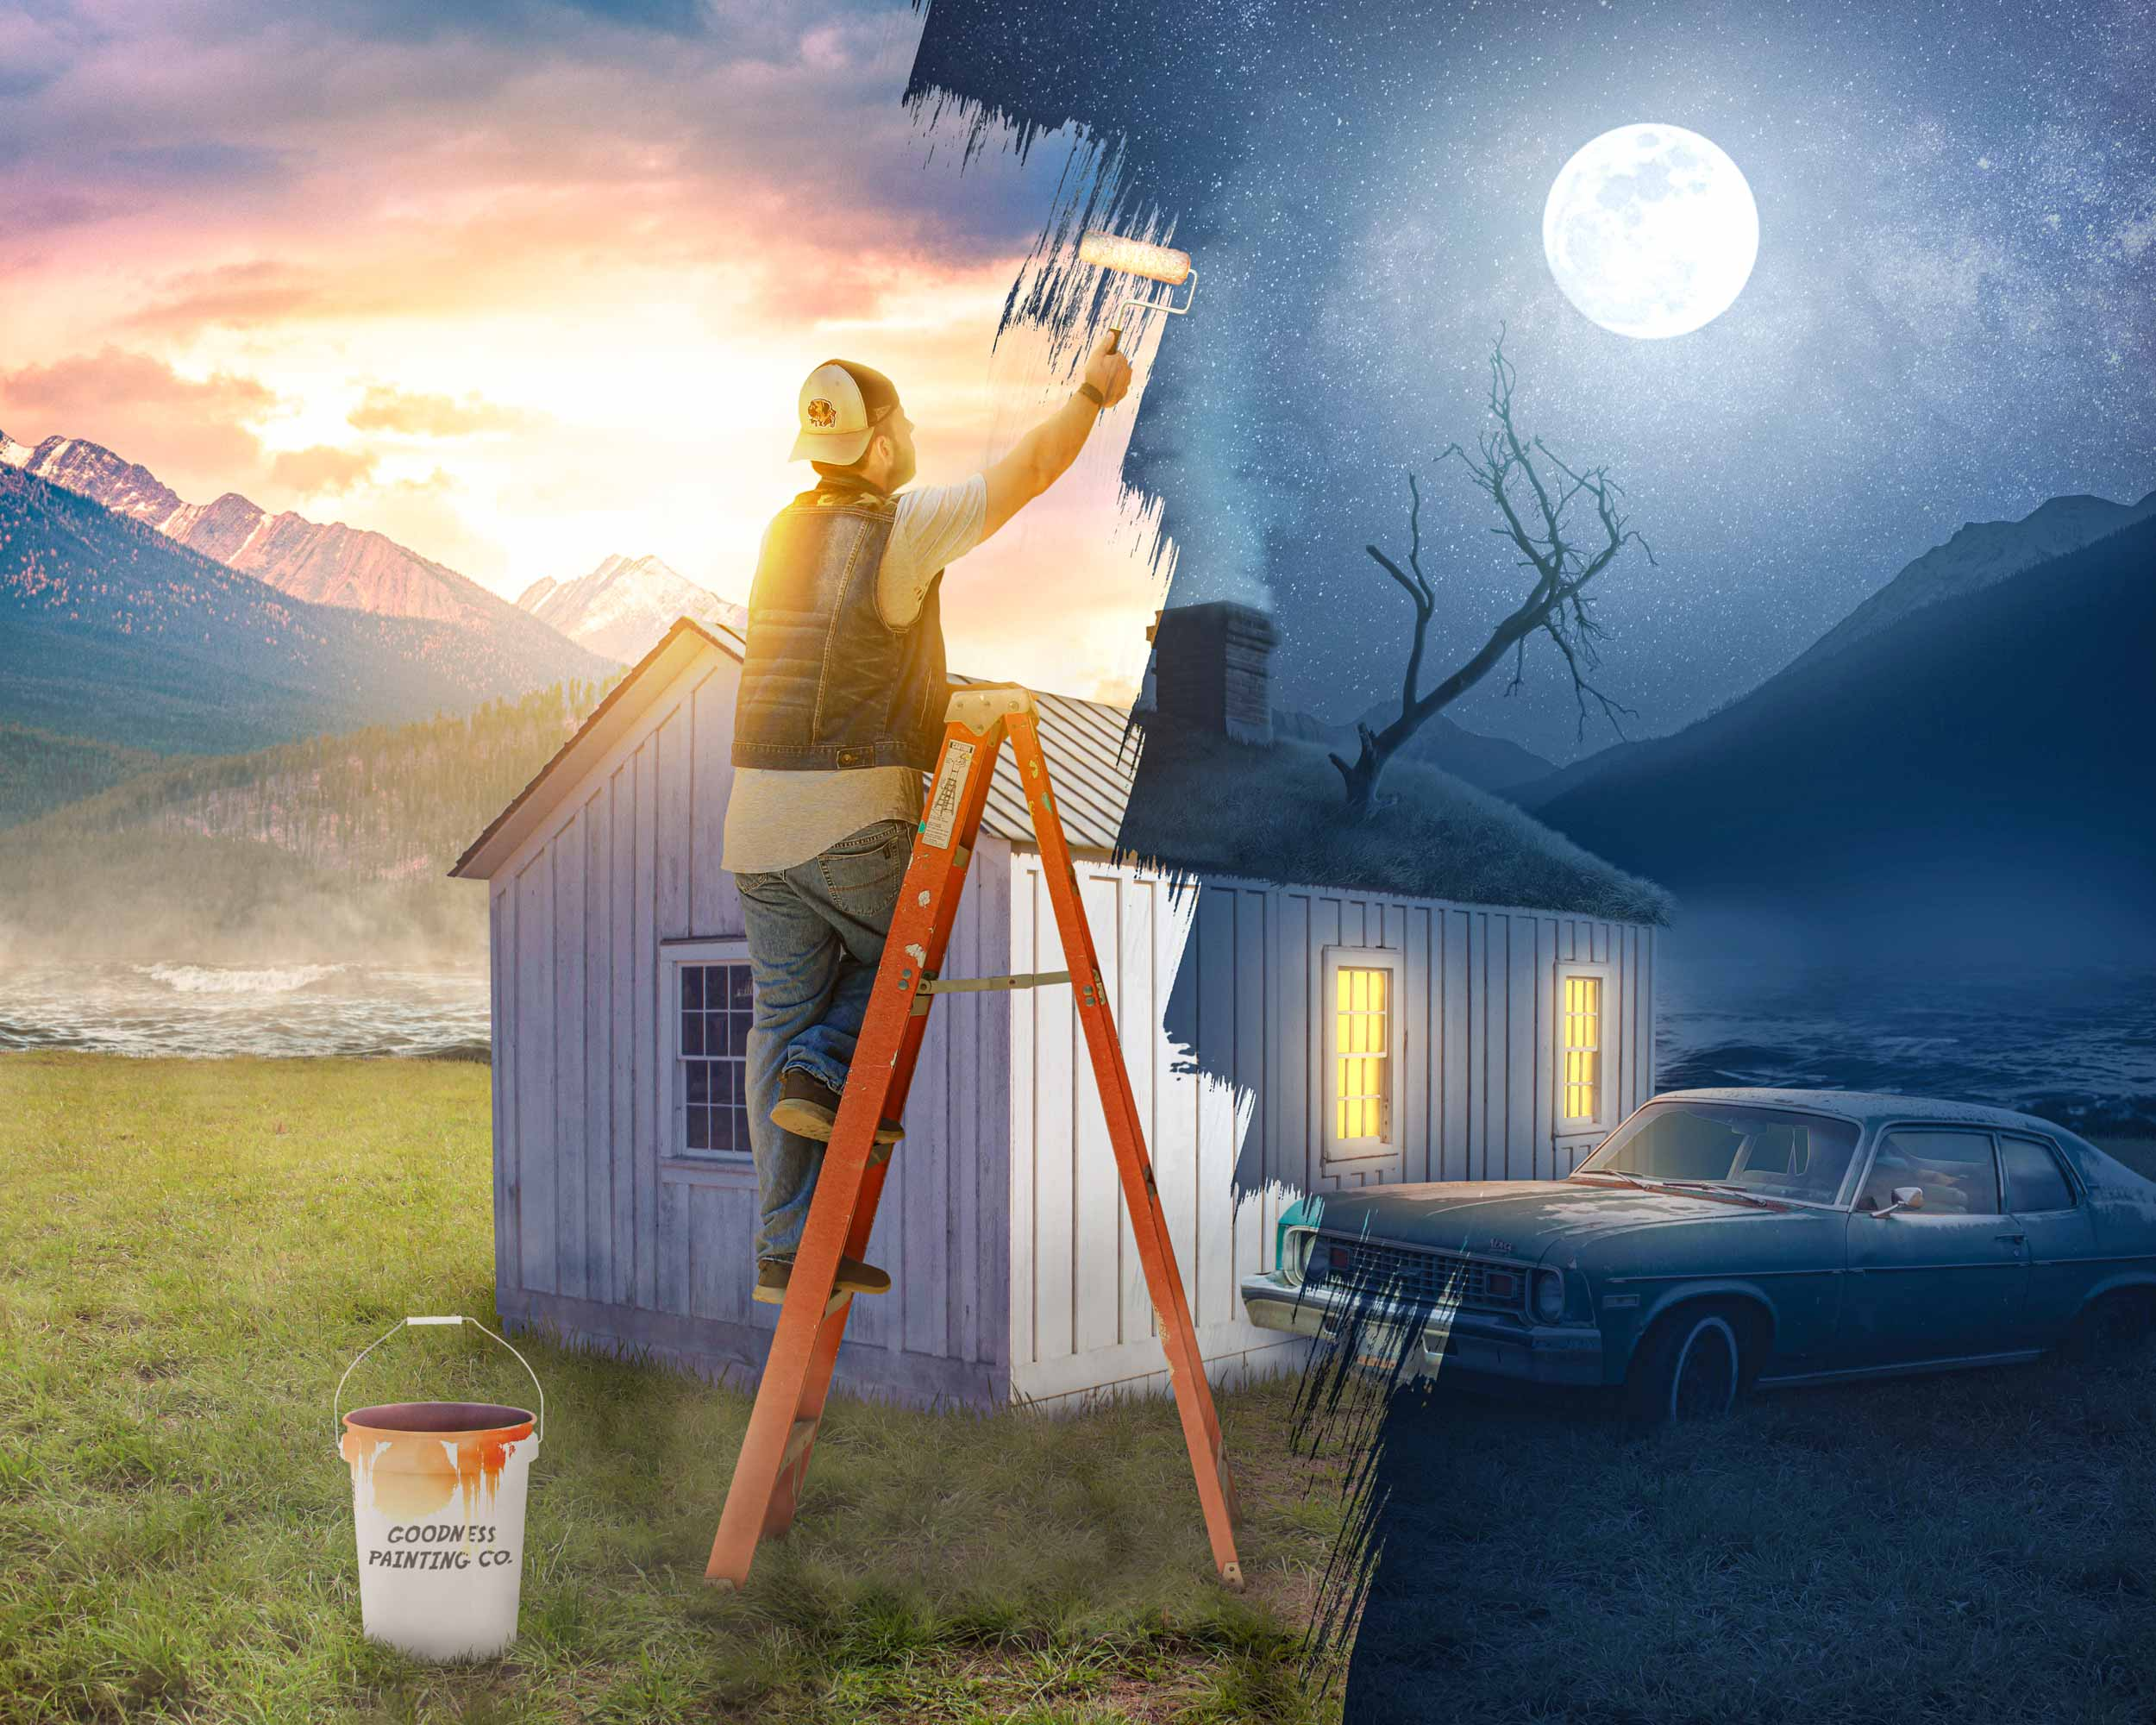 Goodness. A man is on a ladder painting a scene from night into day, from light into darkness.